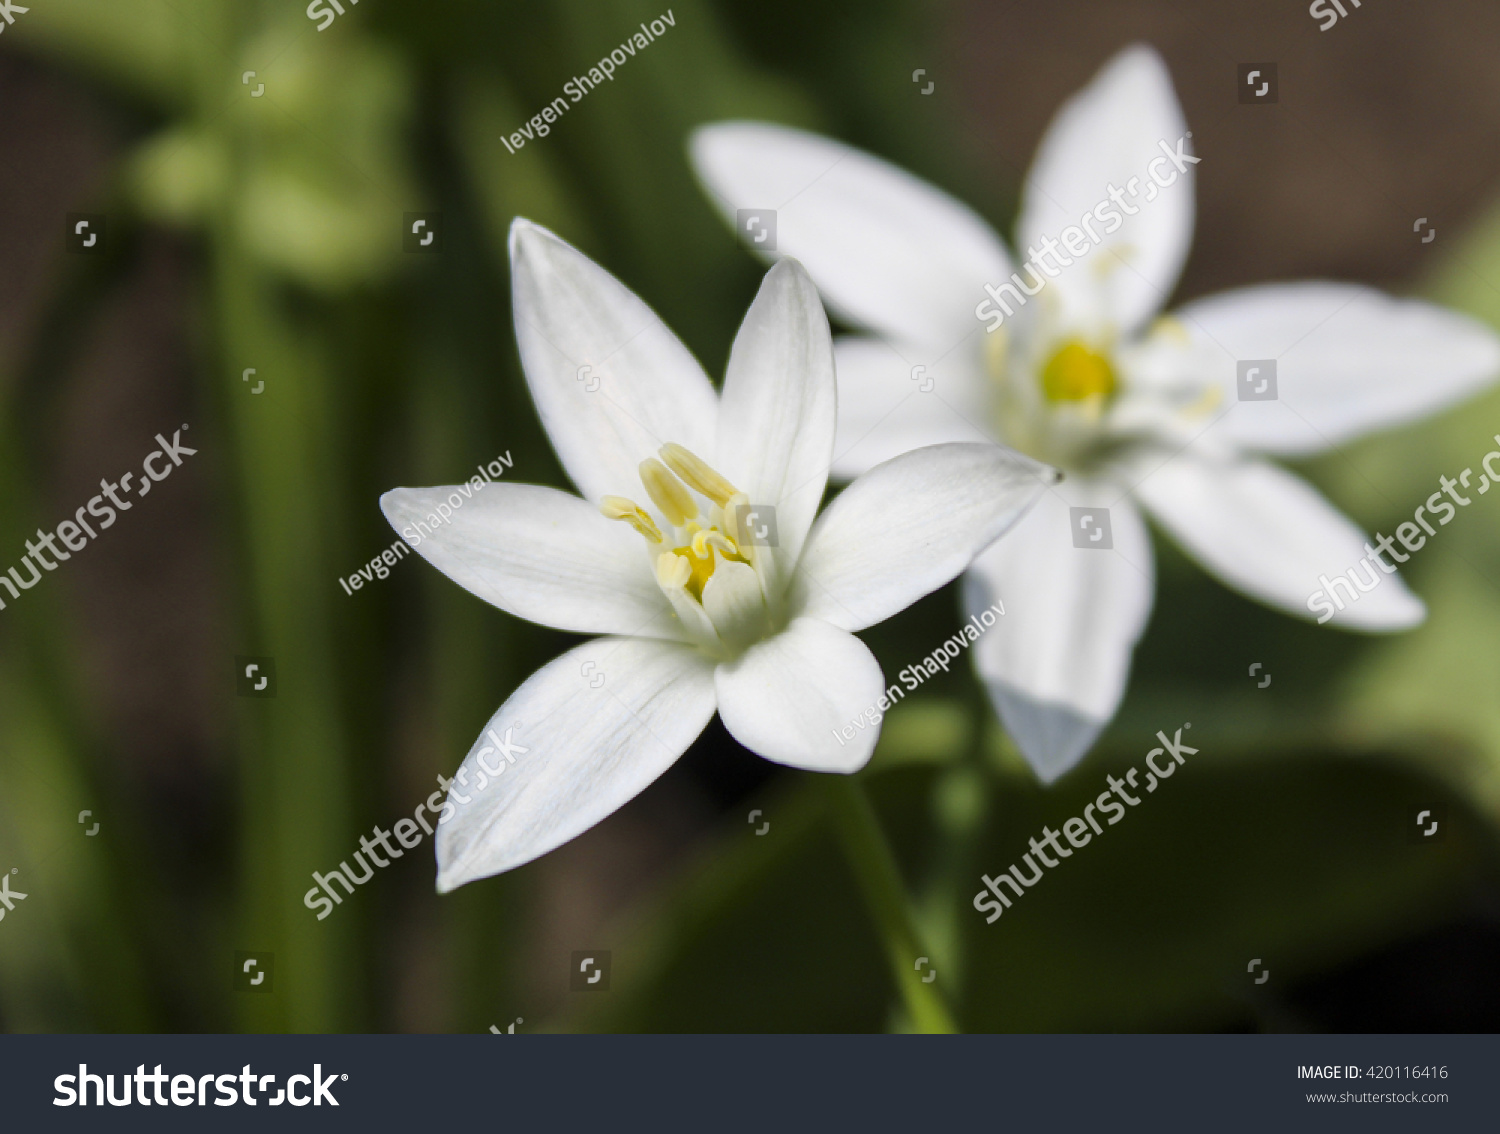 Royalty Free White Flower With Six Petals And A 420116416 Stock